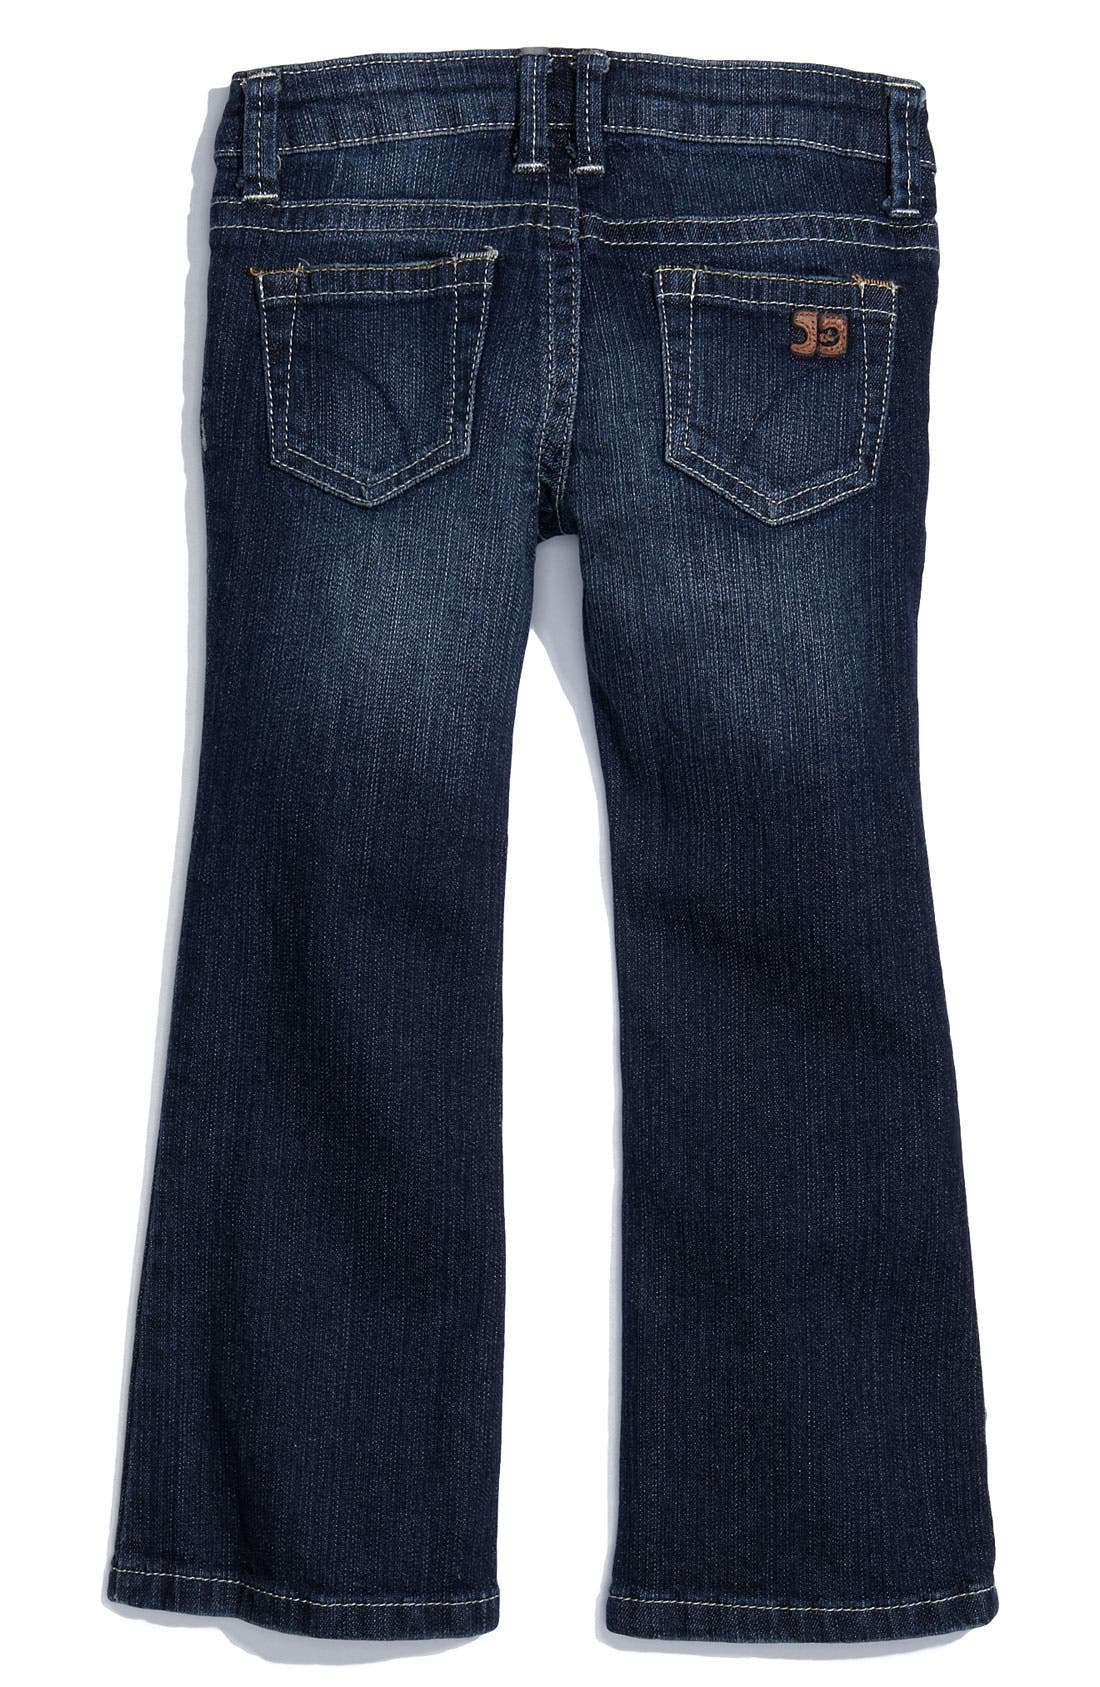 'The Bell' Jeans,                         Main,                         color, 478